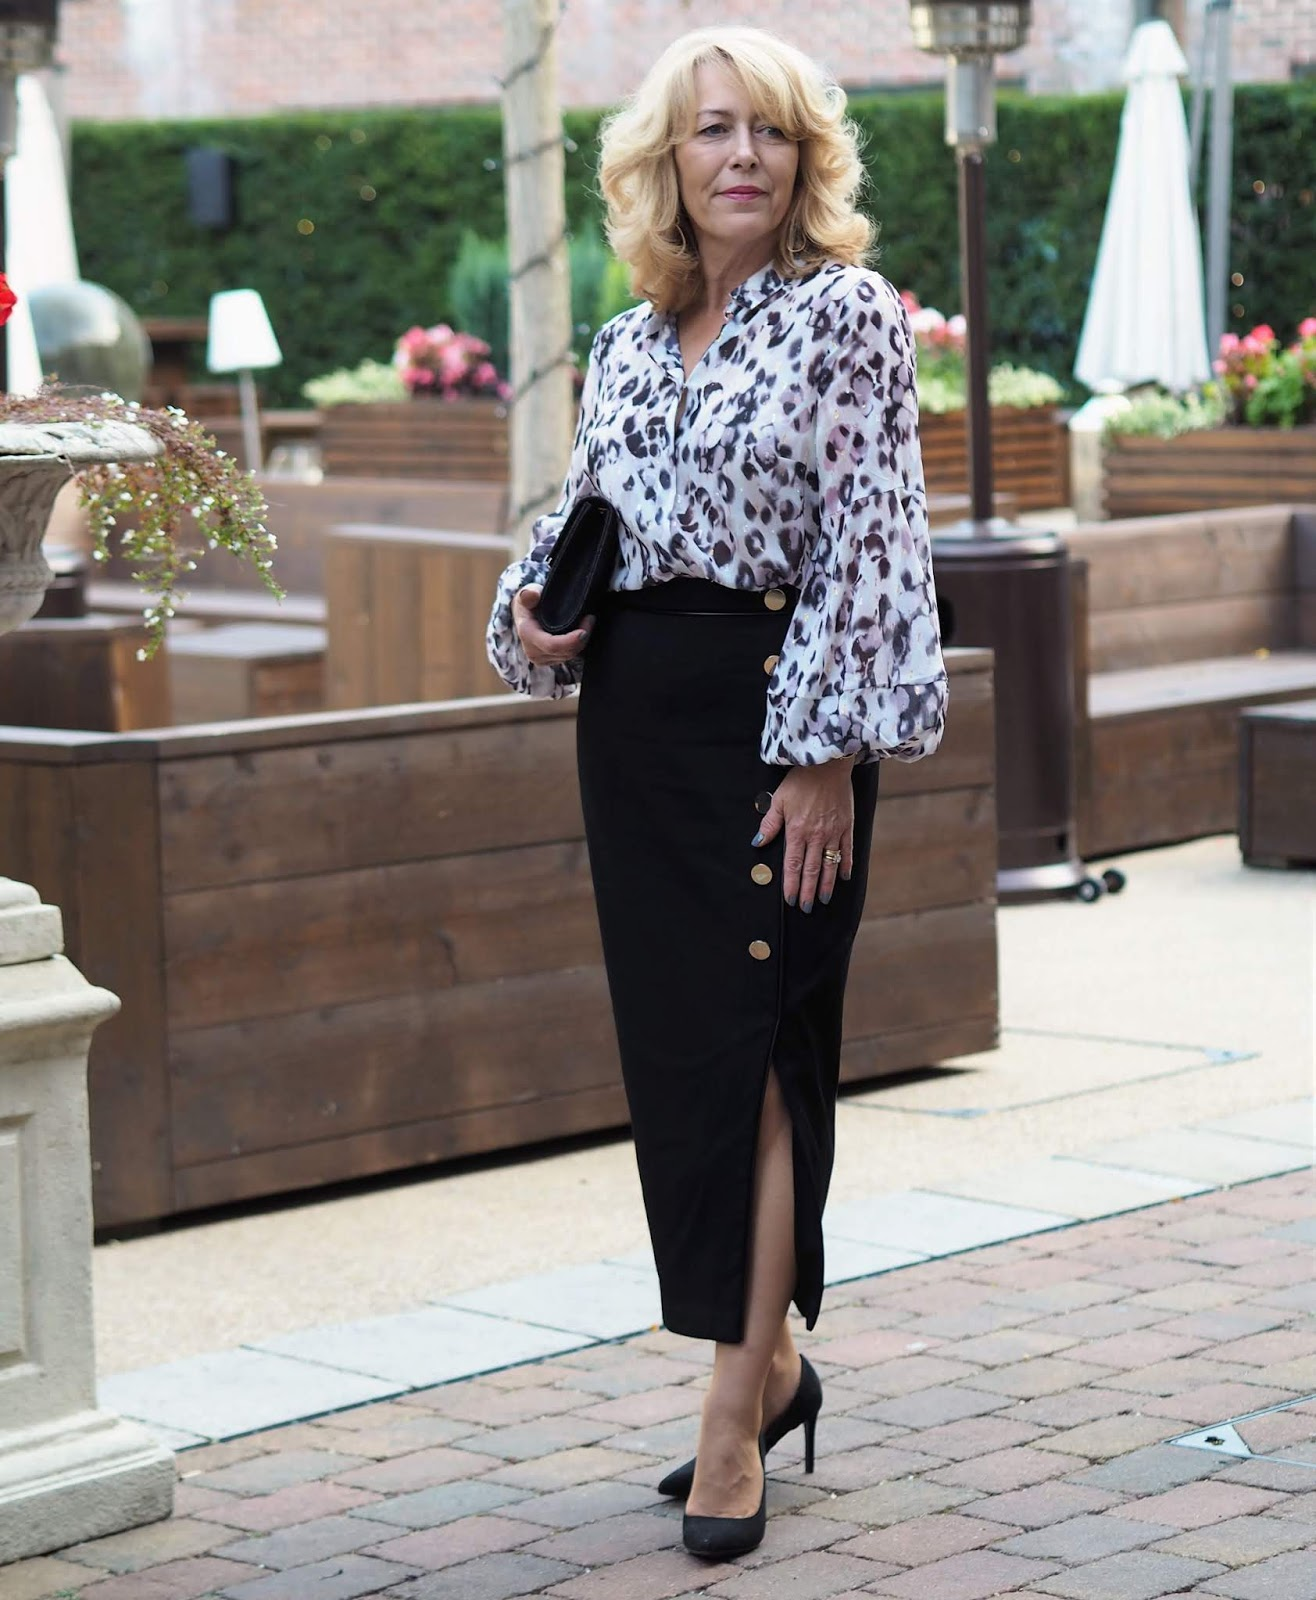 Petite over 50s fashion blogger Laurie Bronze from Vanity and Me shows that petites can wear longer skirts